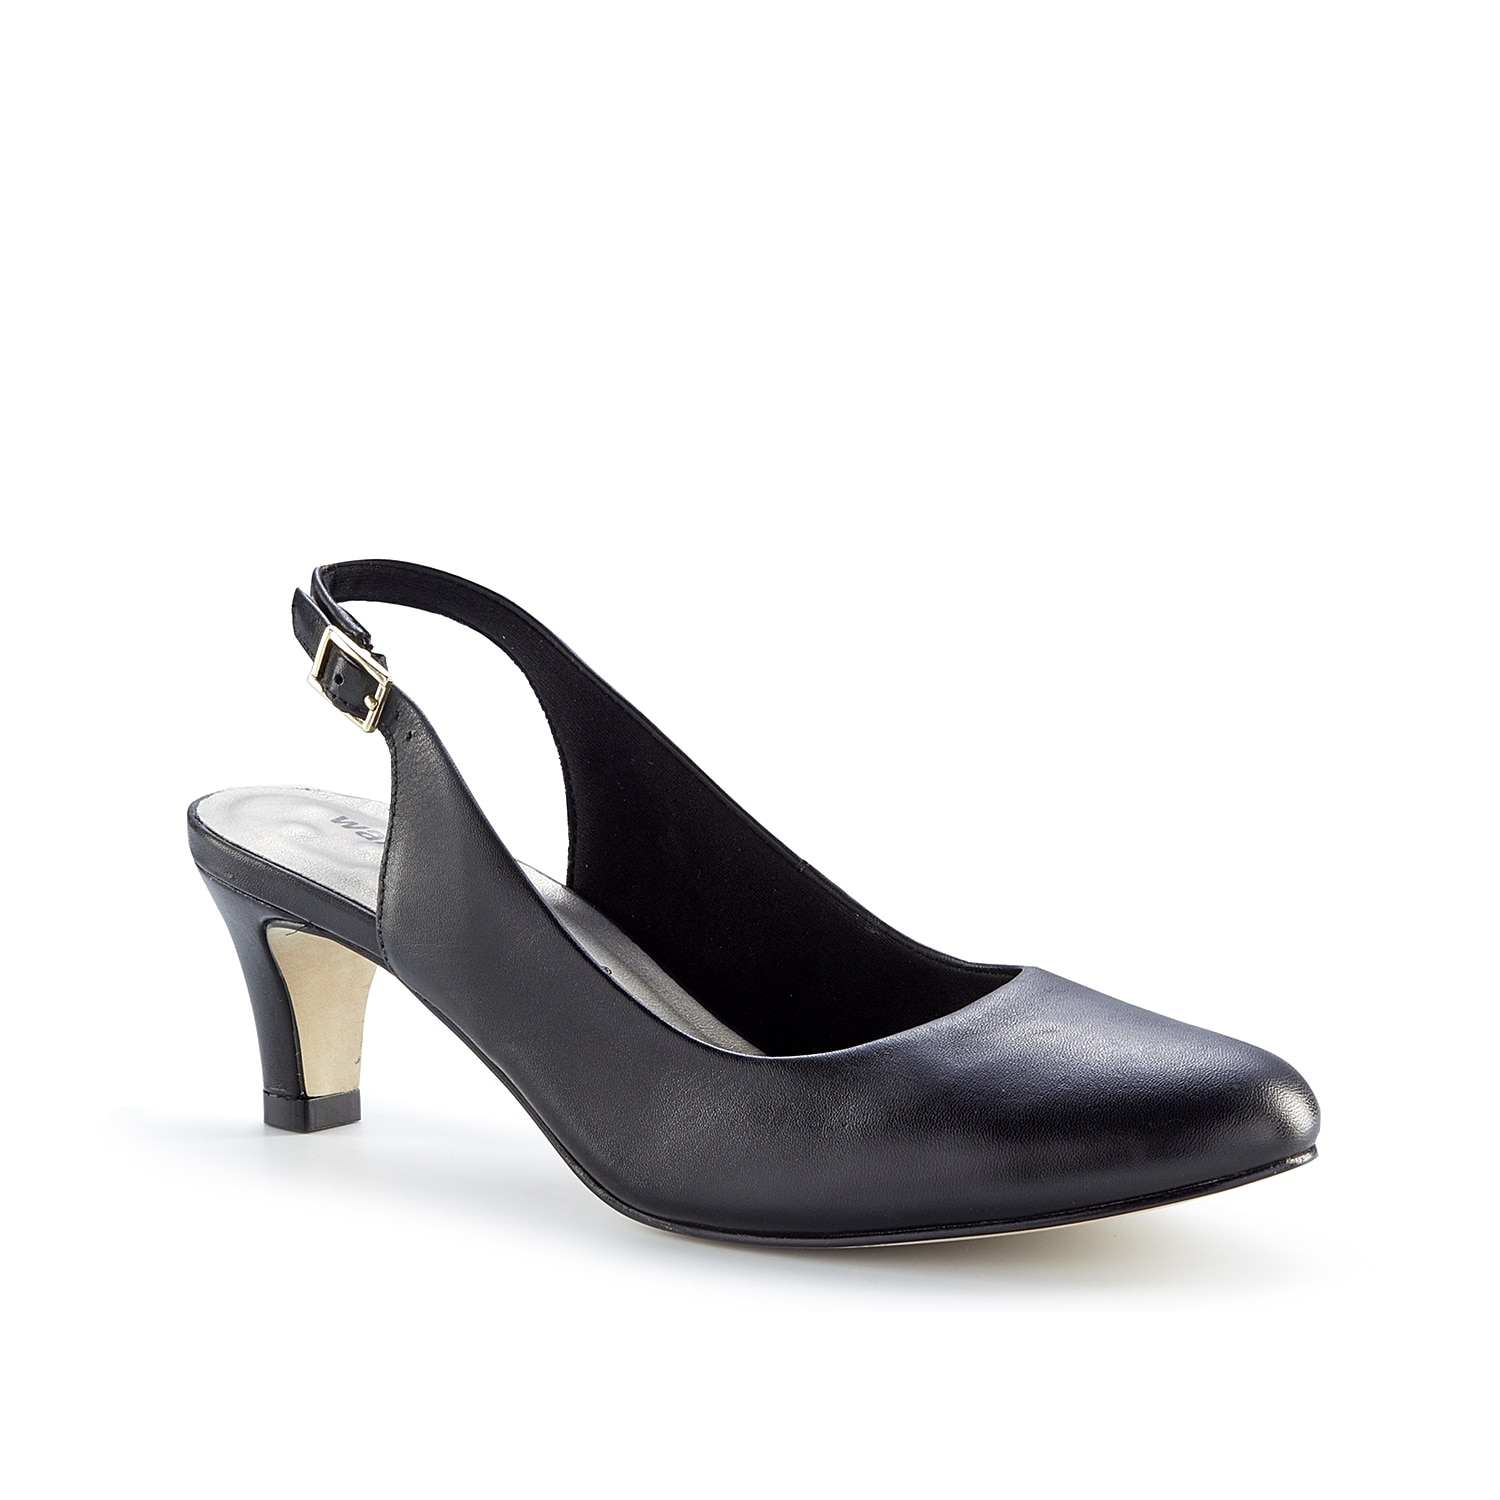 Update your pump collection with added comfort with the Matilda pump from Walking Cradles. This leather slingback features a Tiny Pillows footbed for daylong support.